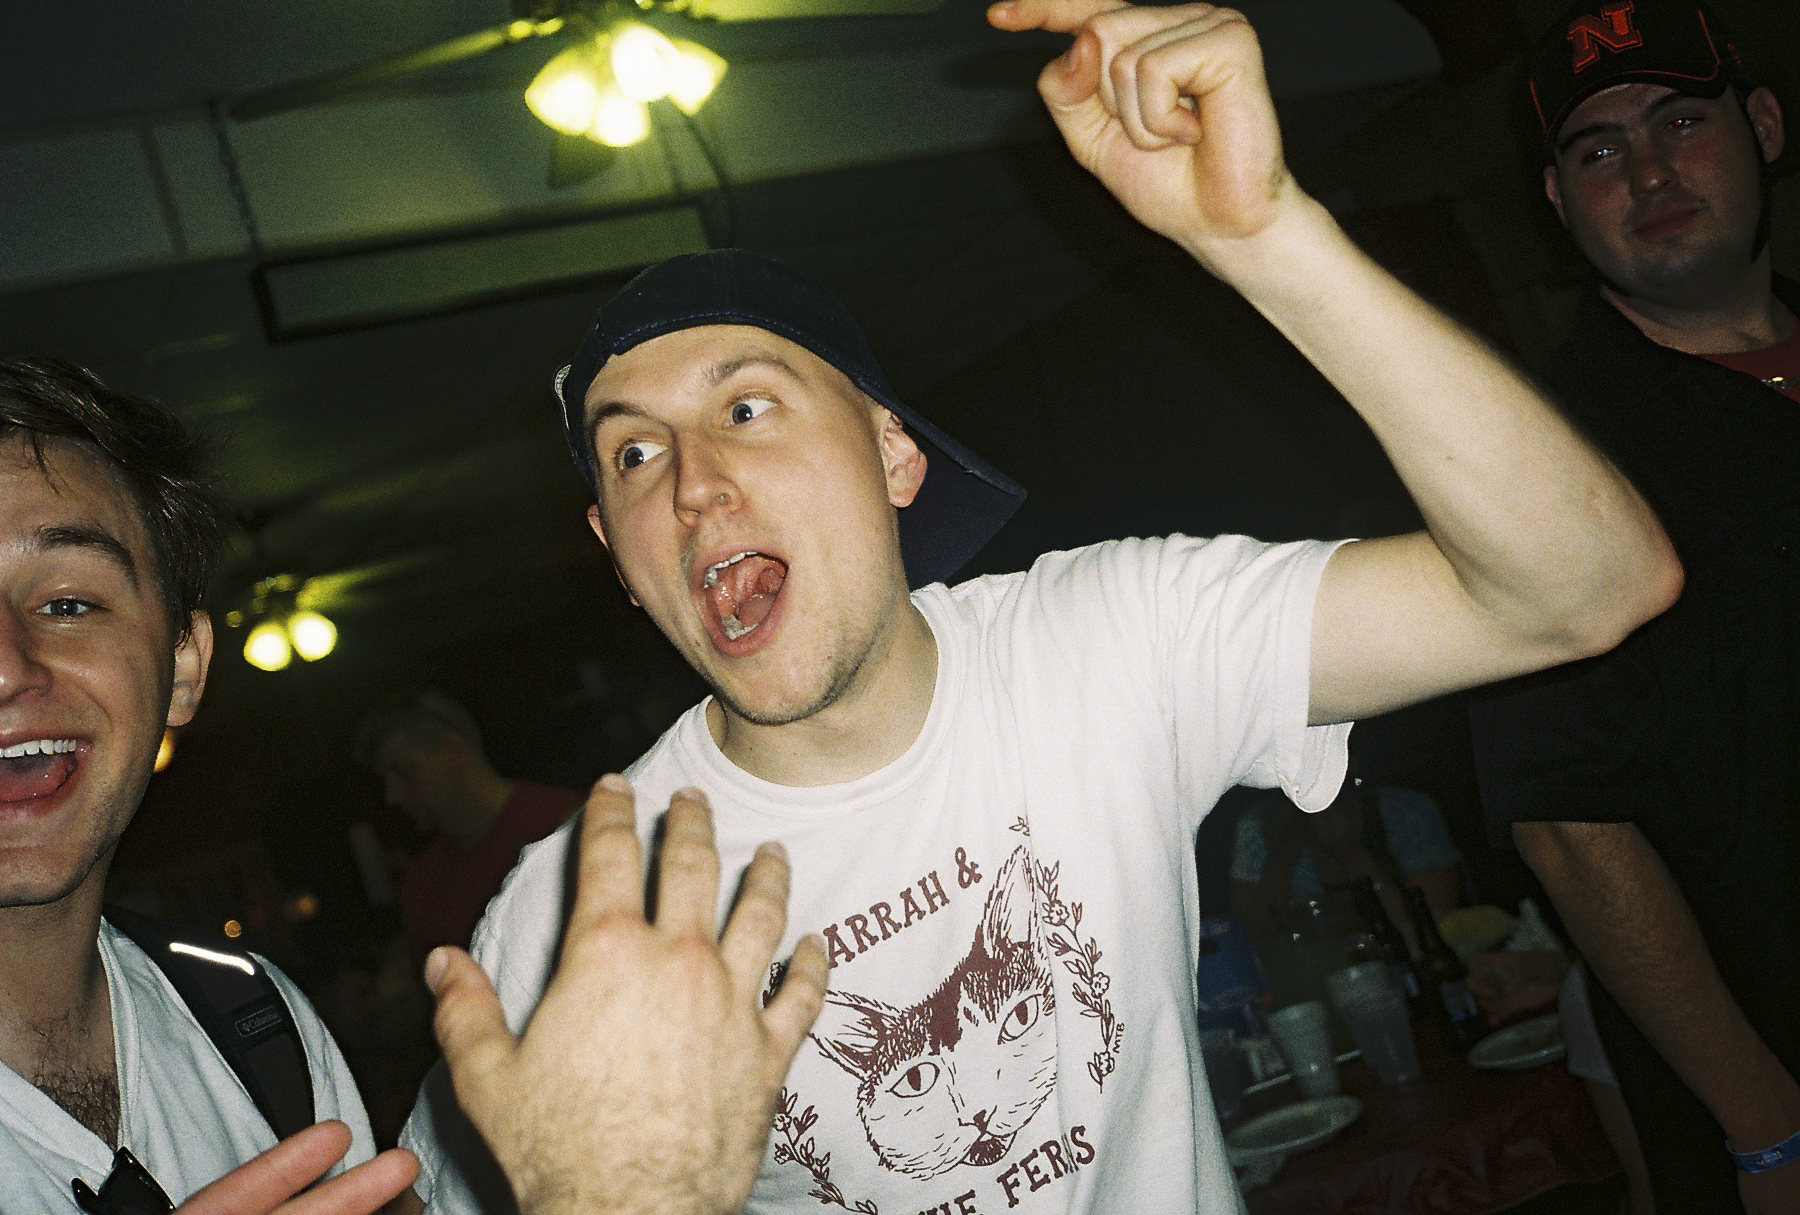 wabach party022.jpg